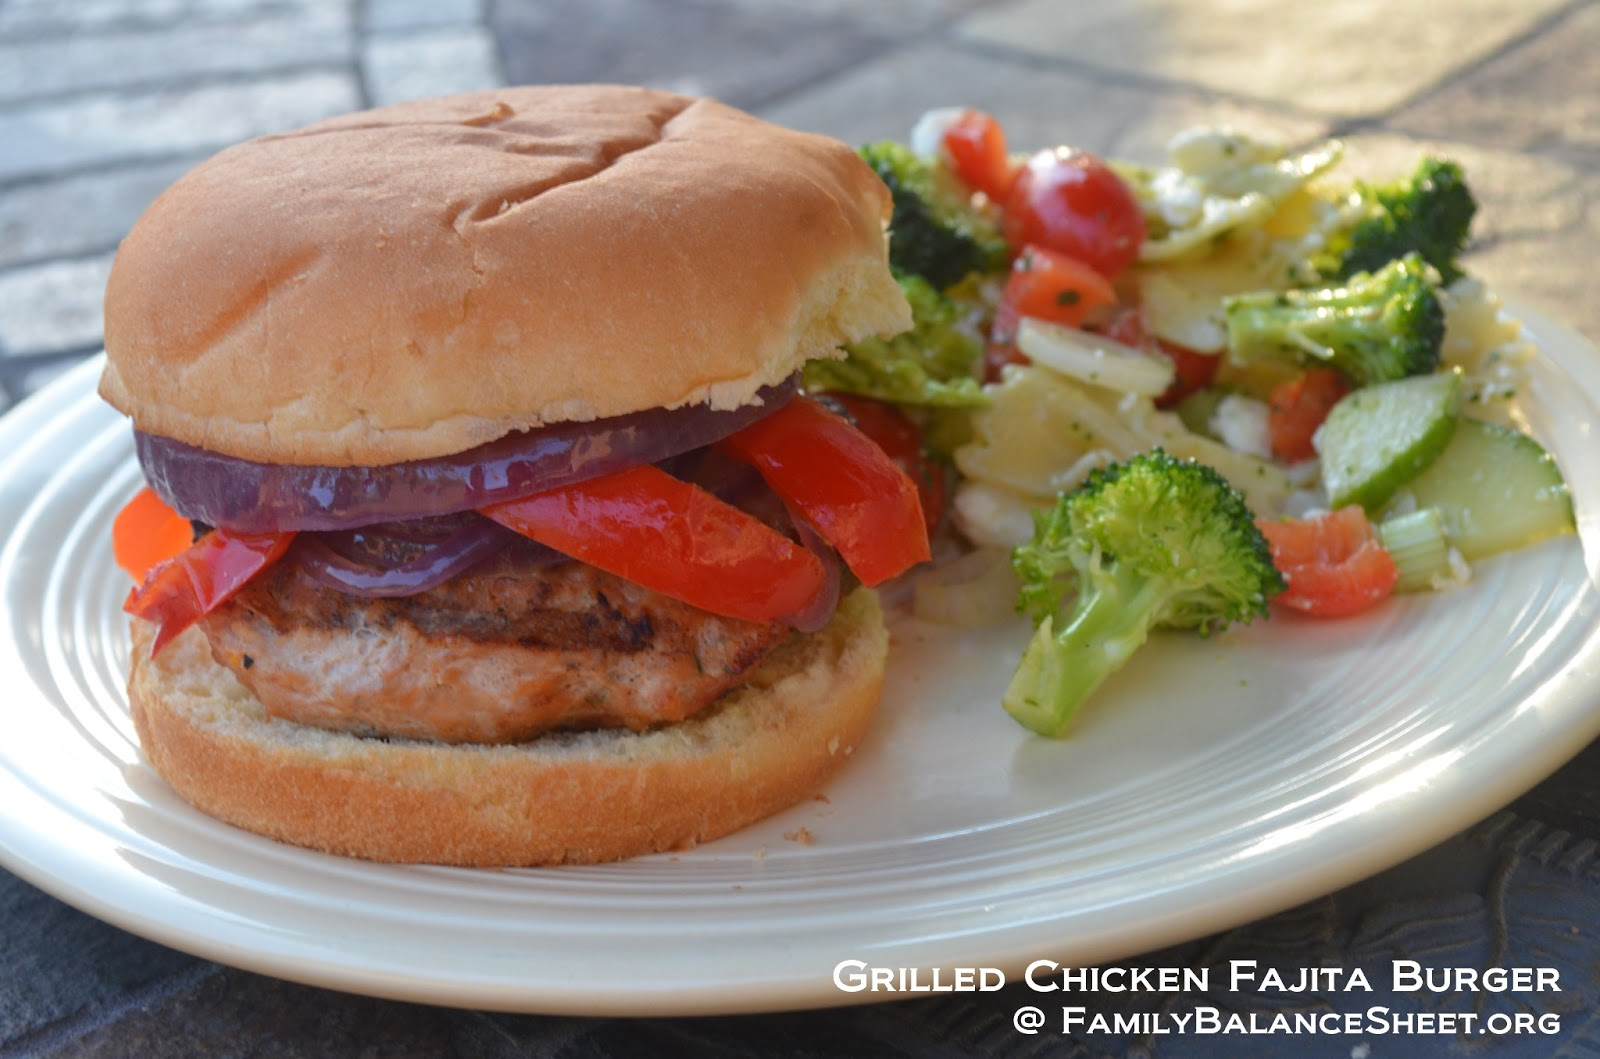 Family Balance Sheet: Grilled Chicken Fajita Burgers